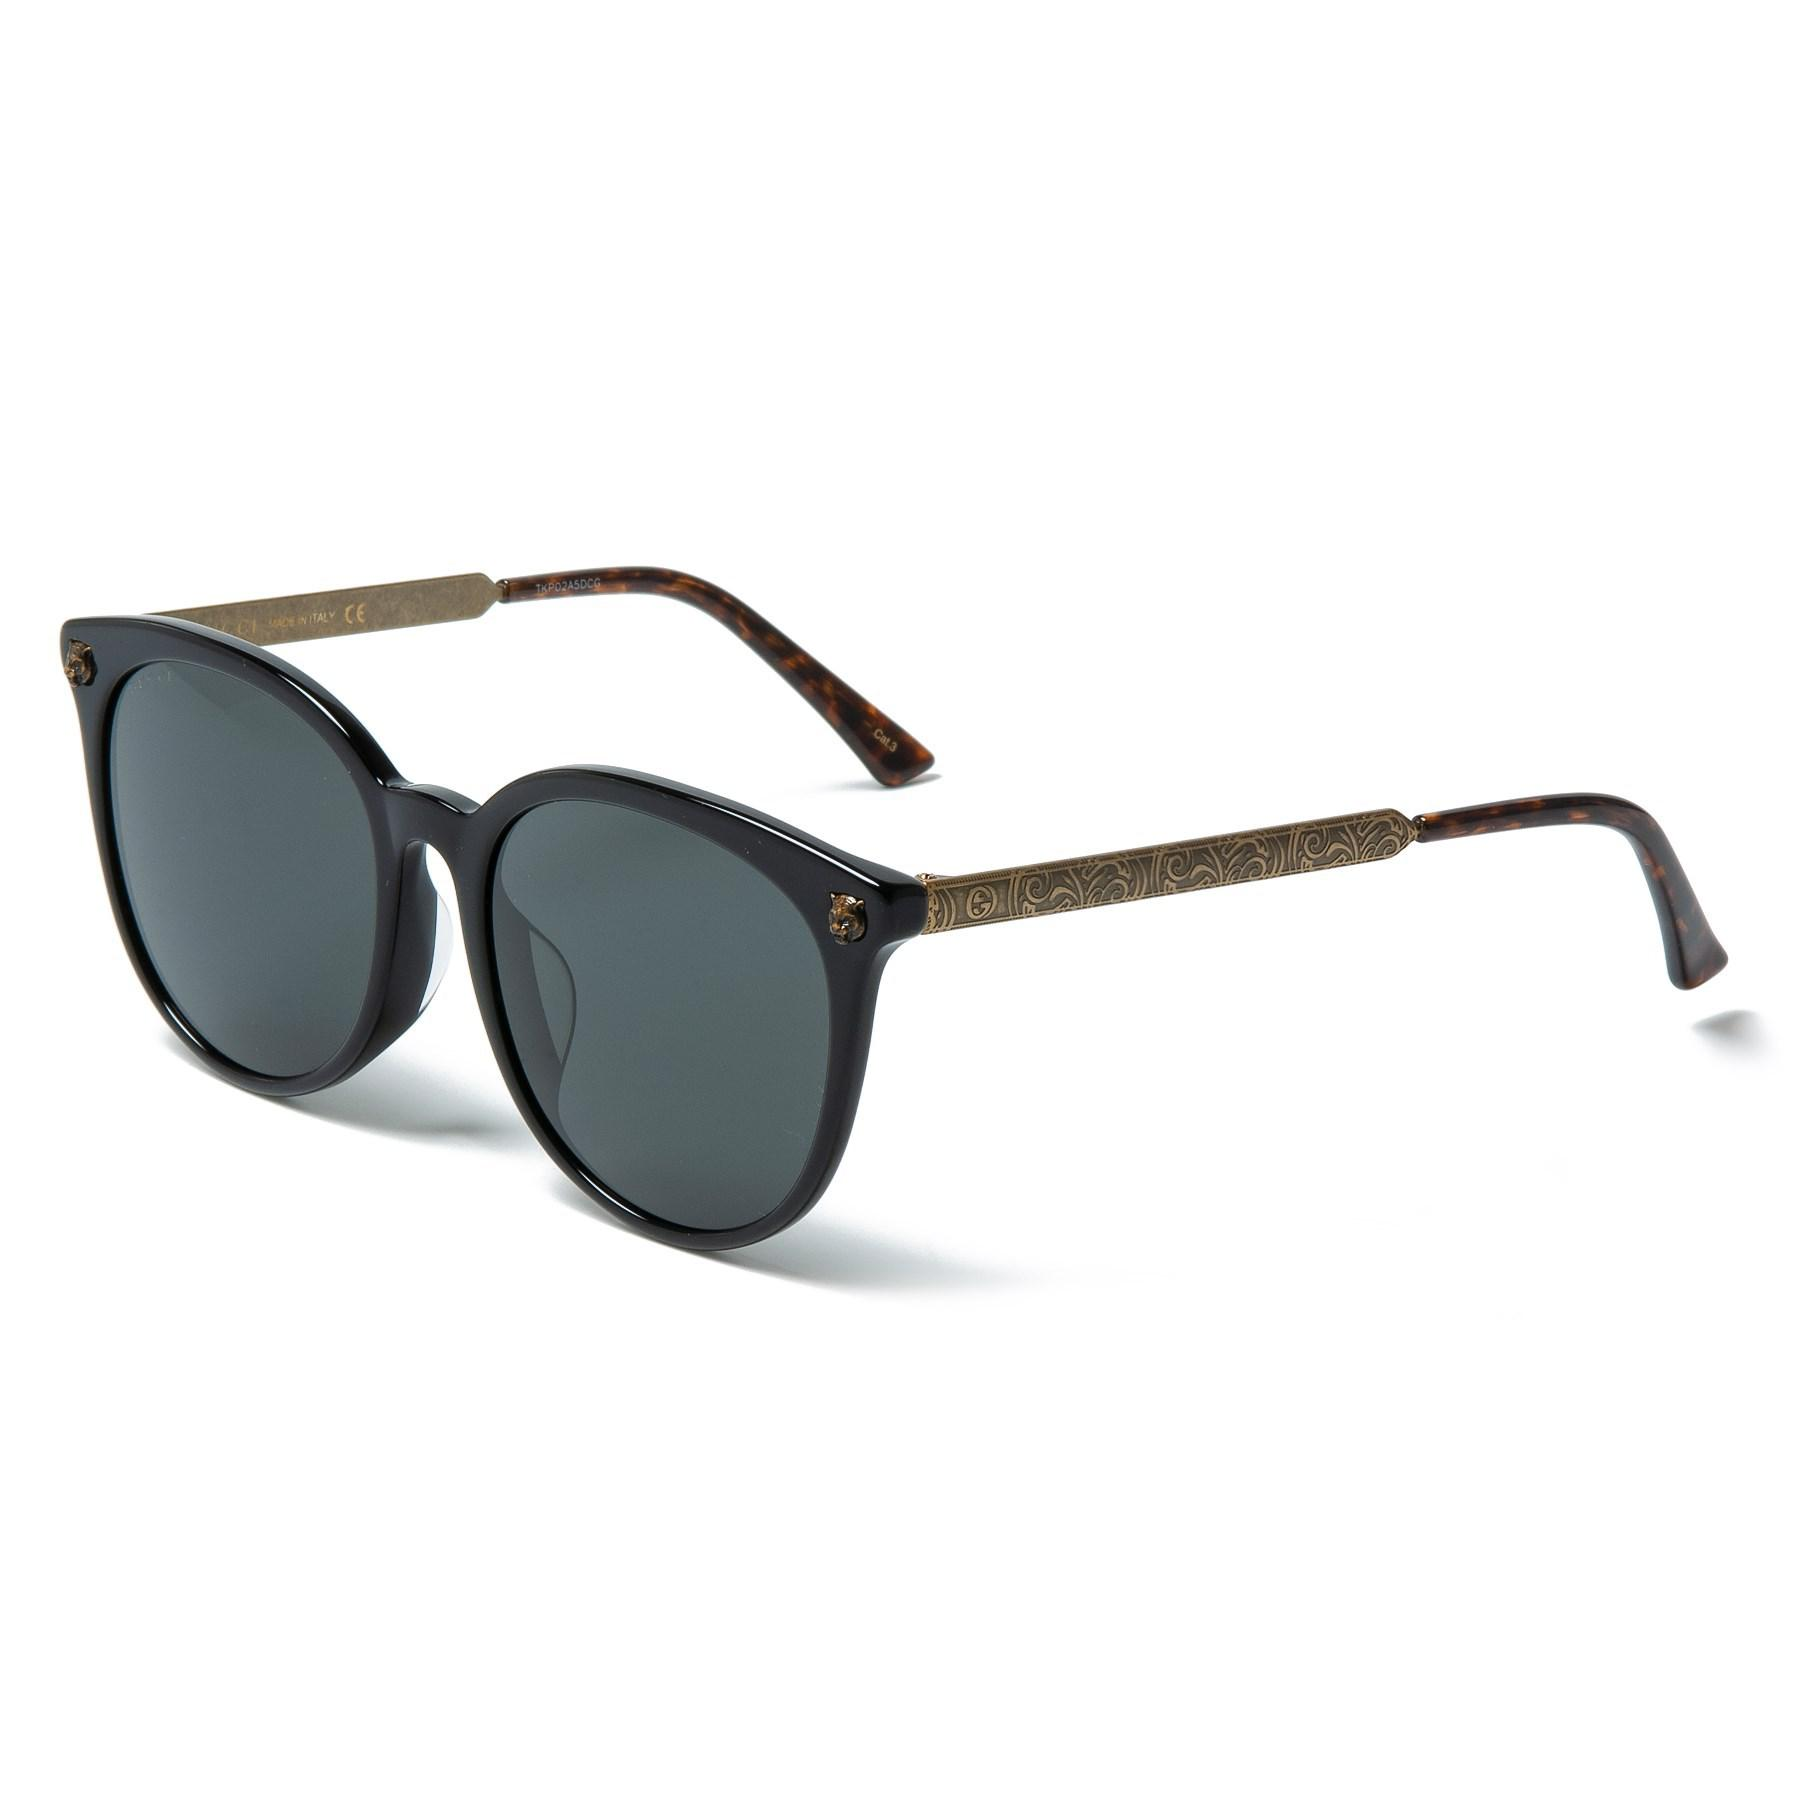 1373ac3dd7a Lyst - Gucci Modern Wayfarer Sunglasses (for Women) in Black